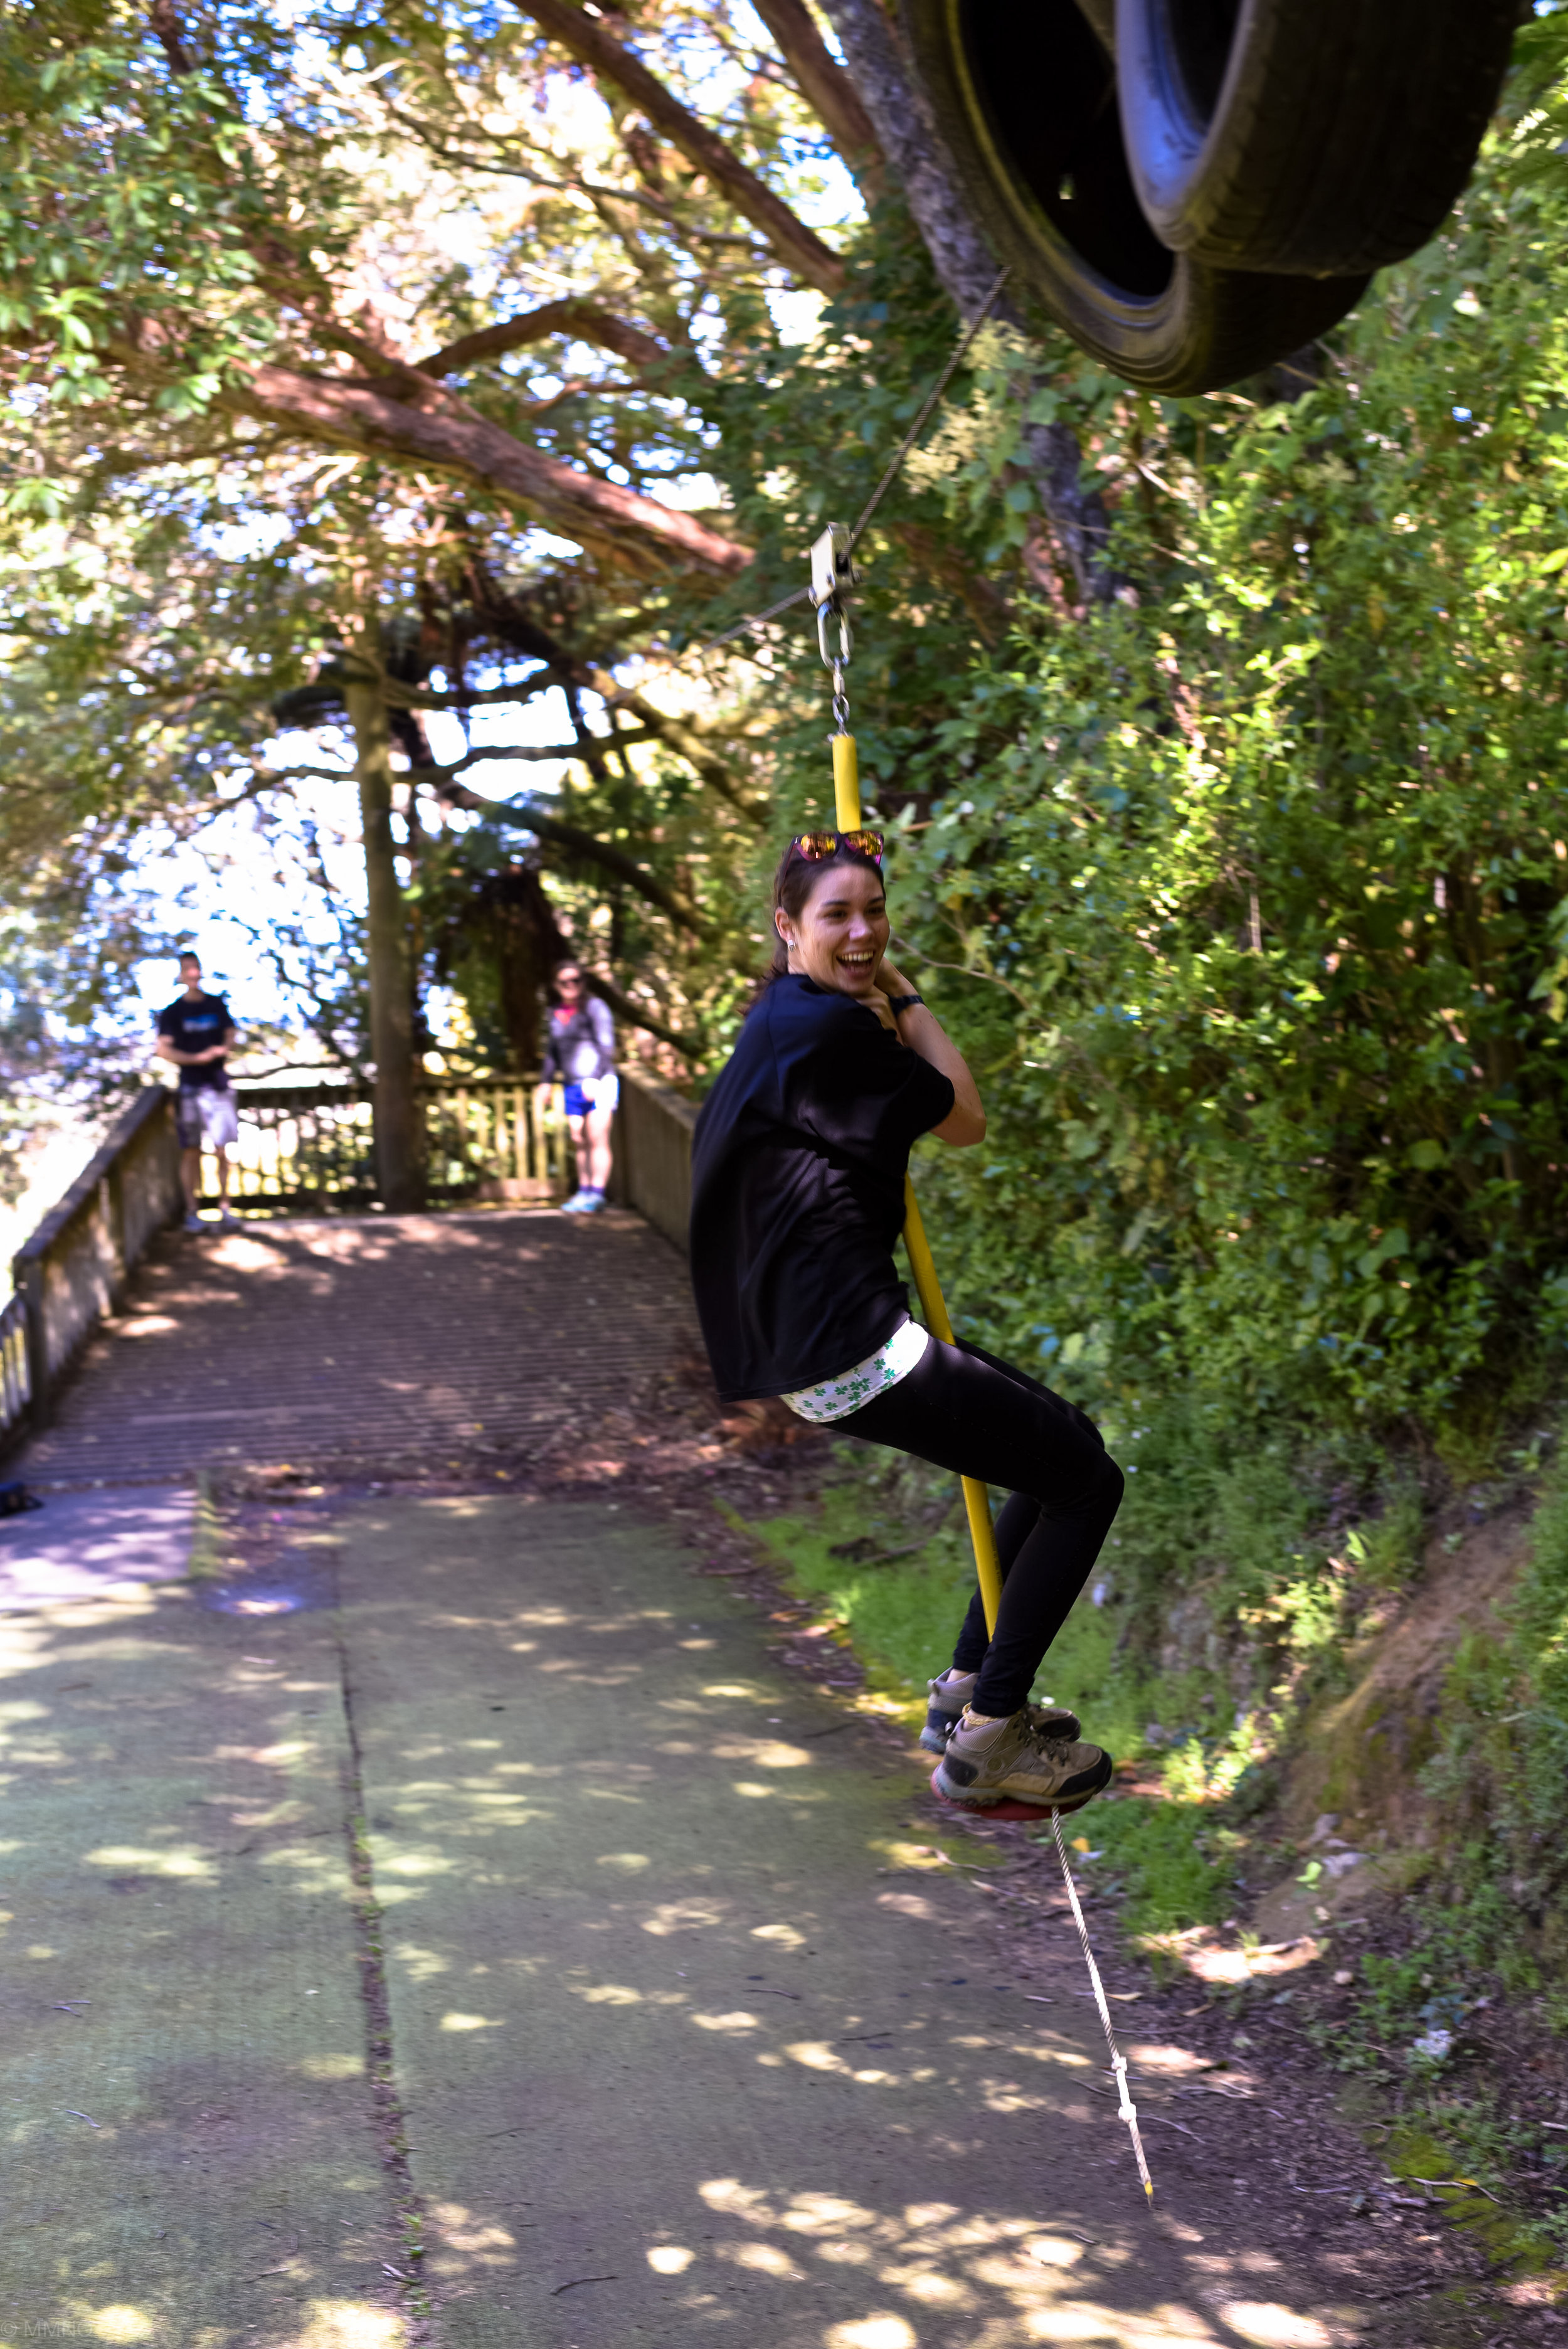 Brigid, rebel without a cause! Standing on the flying fox despite explicitly being told she can't!